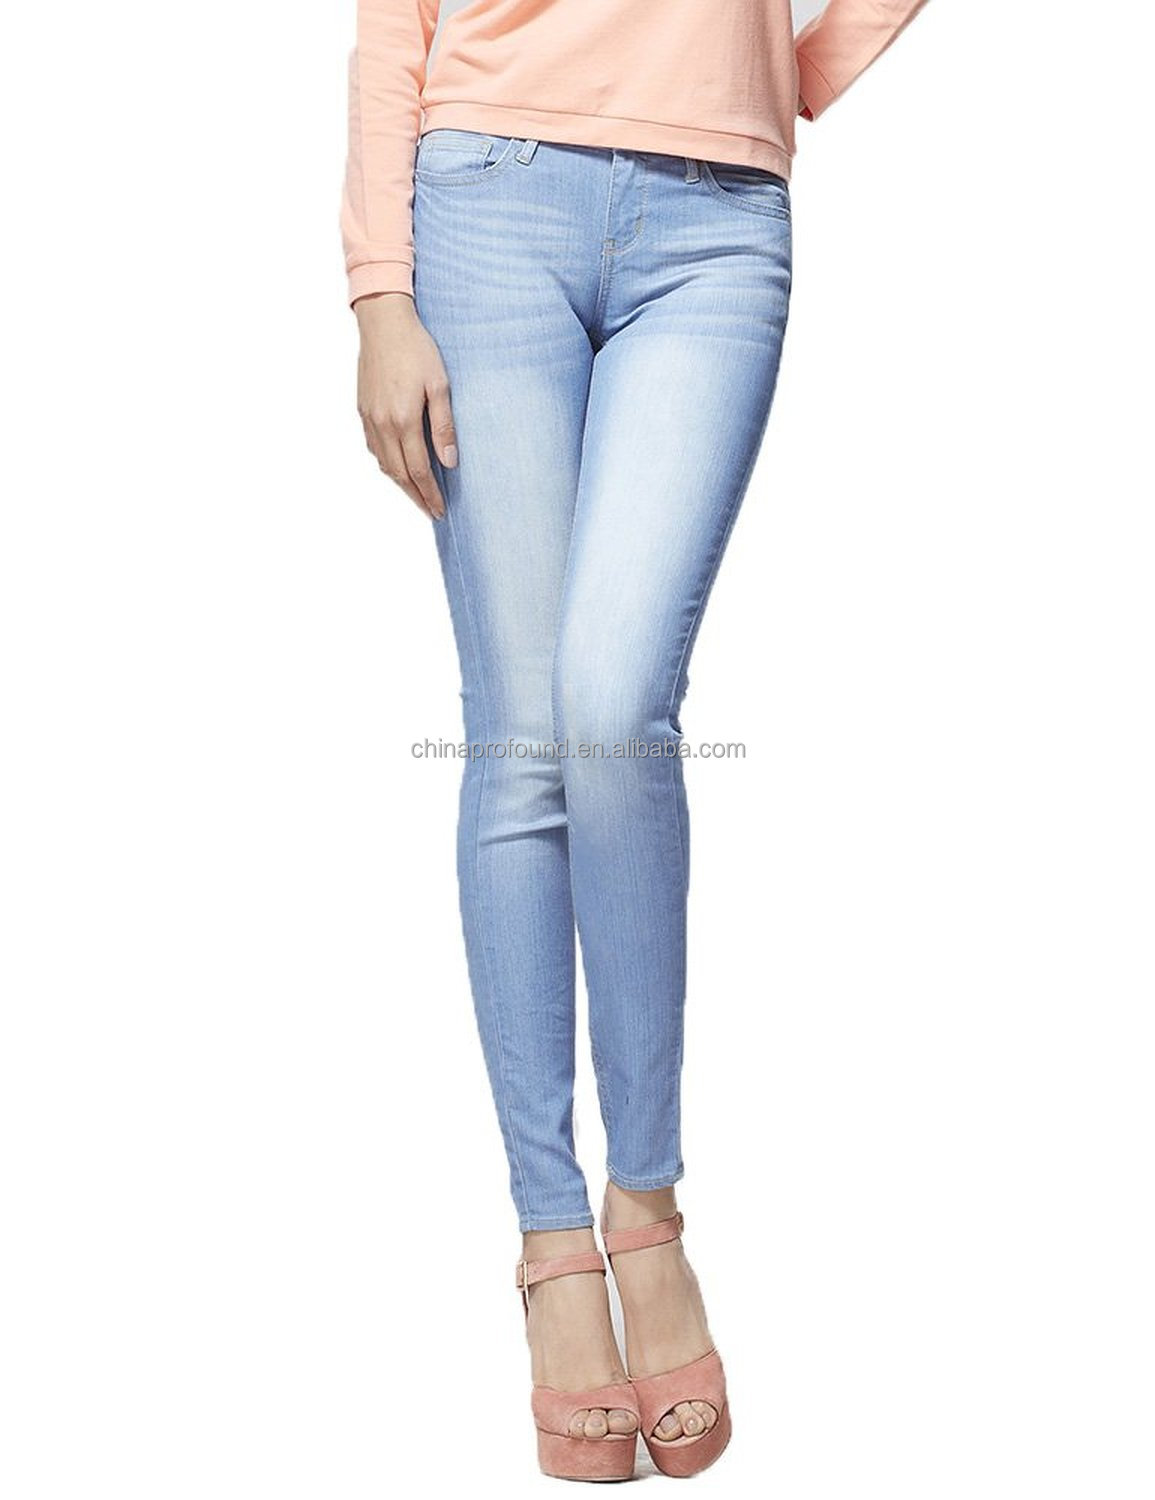 Find great deals on eBay for womens tight pants. Shop with confidence.